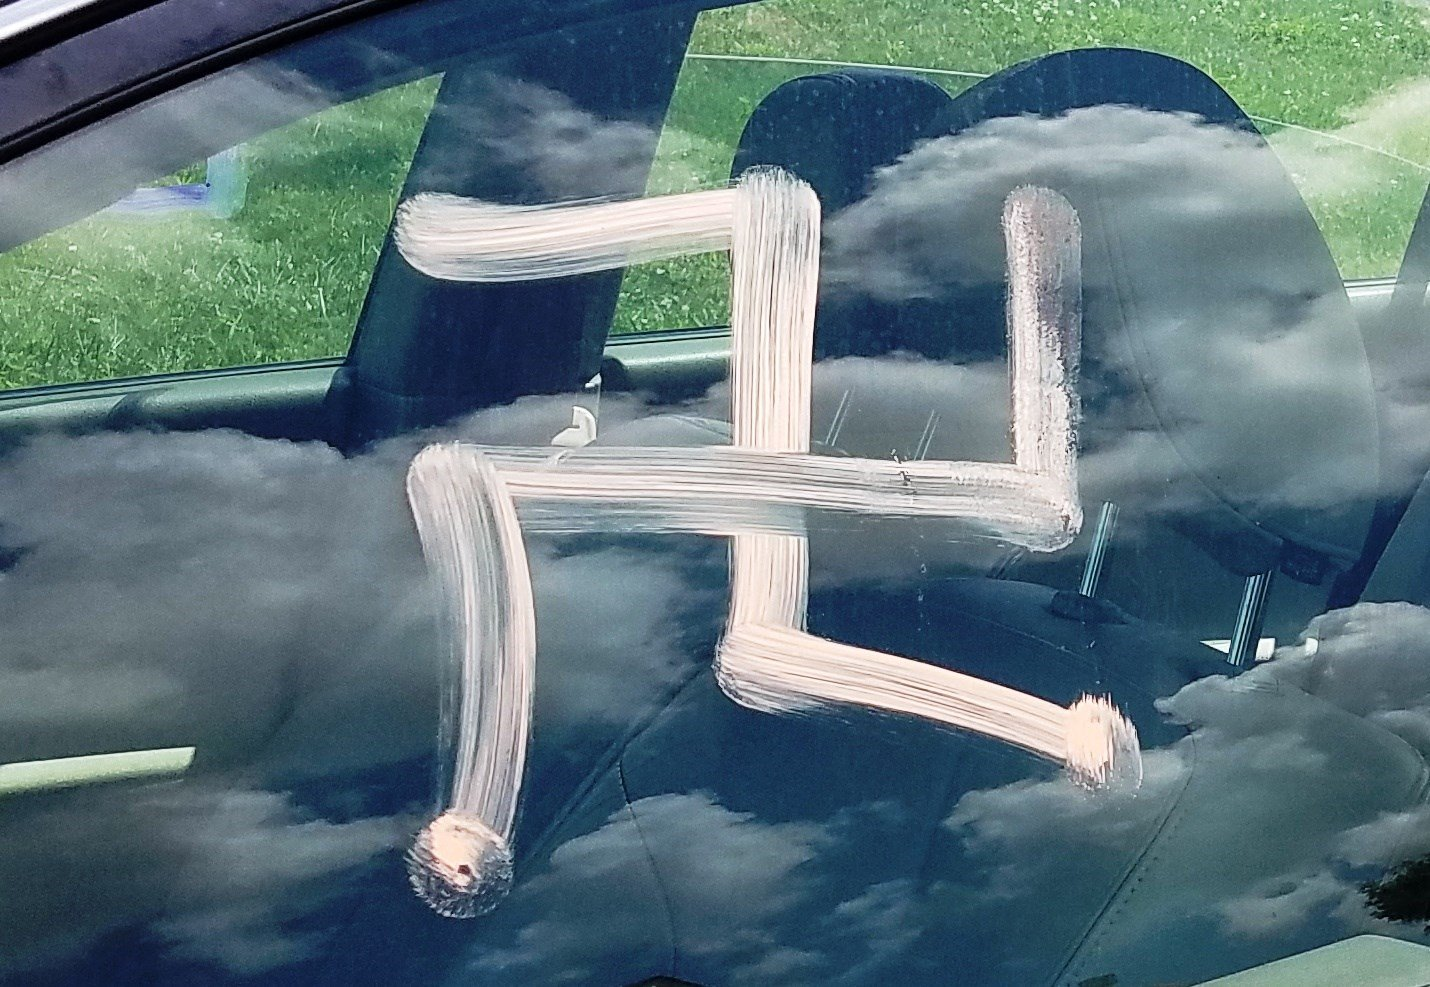 Grain Valley police are seeking help after vandals damaged parked vehicles by writing racial slurs and sexually suggestive drawings. (CrimeStoppers)